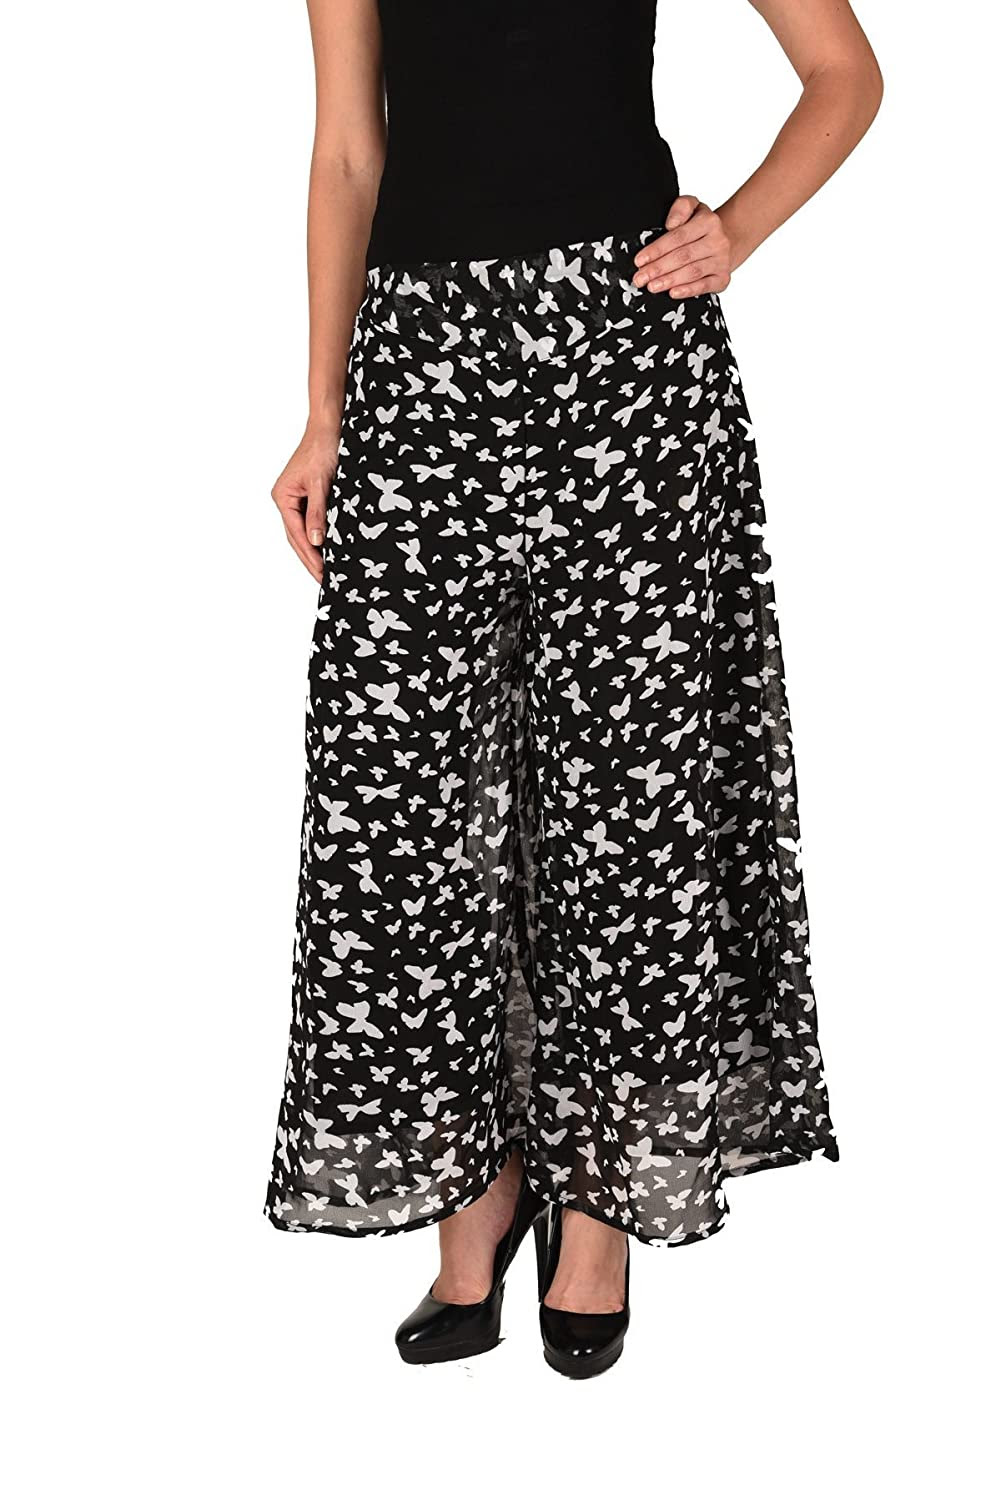 Deals on Women Stylish Butterfly Print Georgette Plazzo